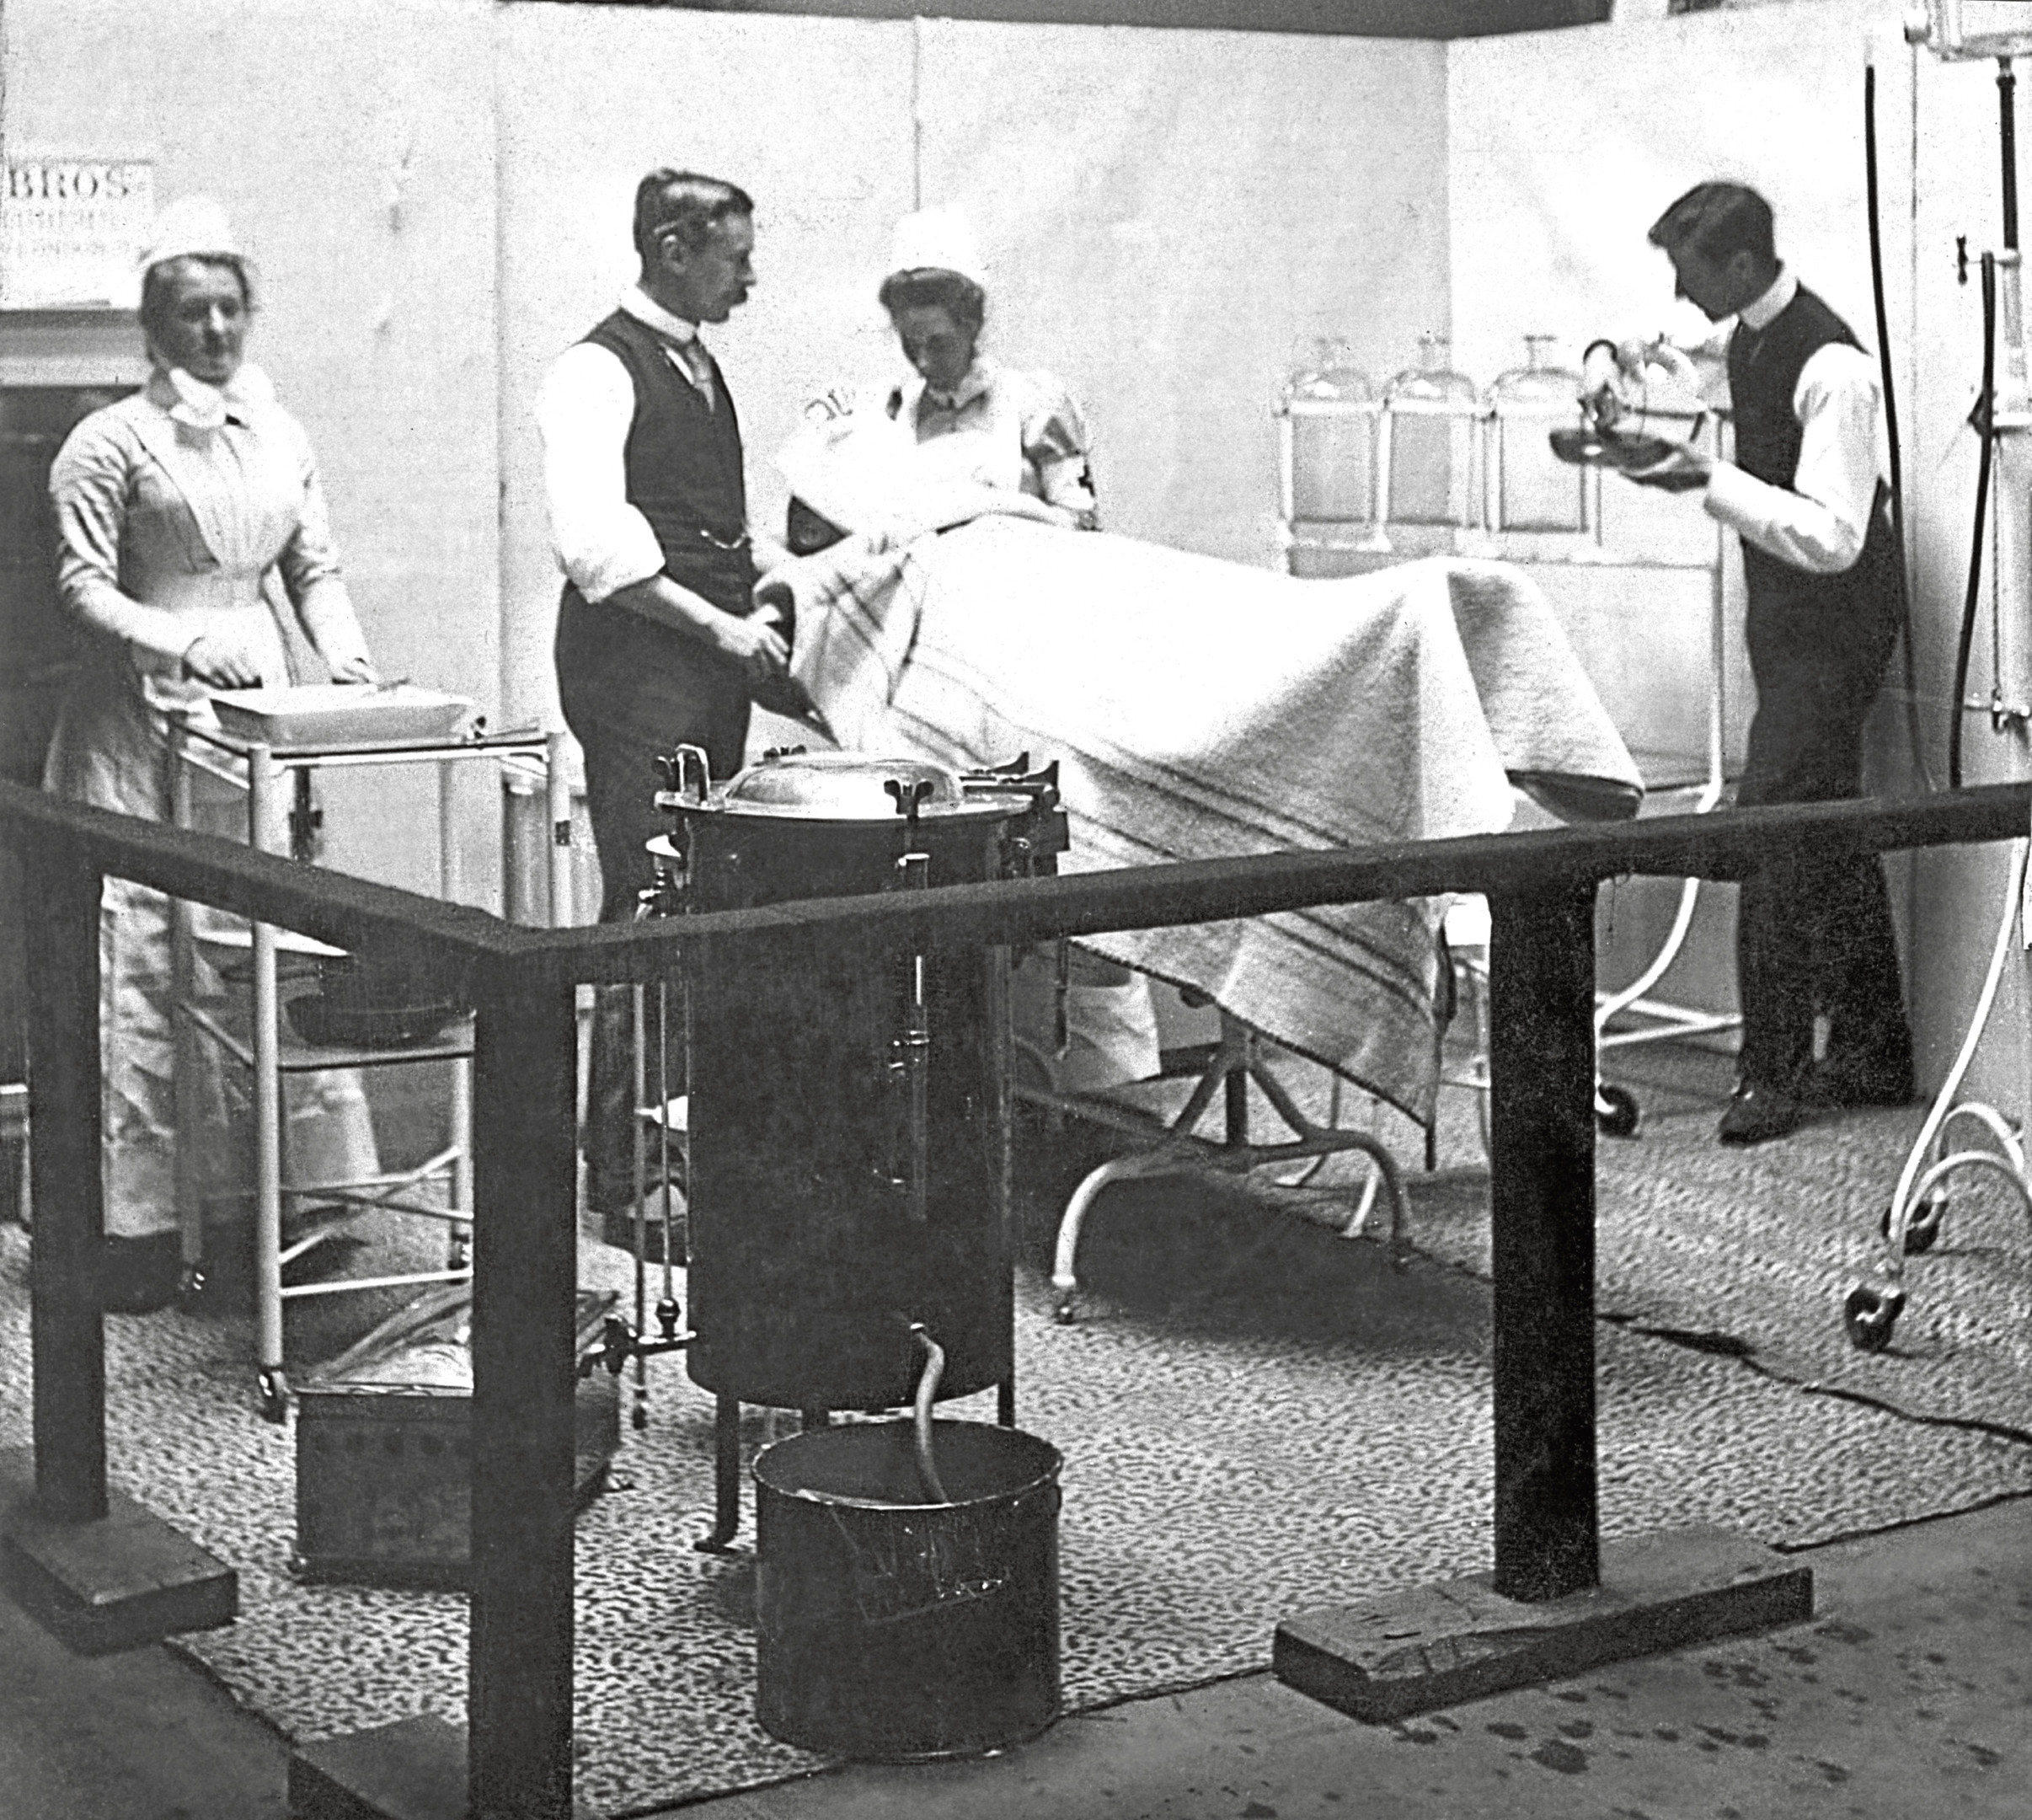 circa 1890: A model of a patient undergoing surgery in a late Victorian era operating theatre. Spencer's Gold Medal Services (Photo by Hulton Archive/Getty Images)